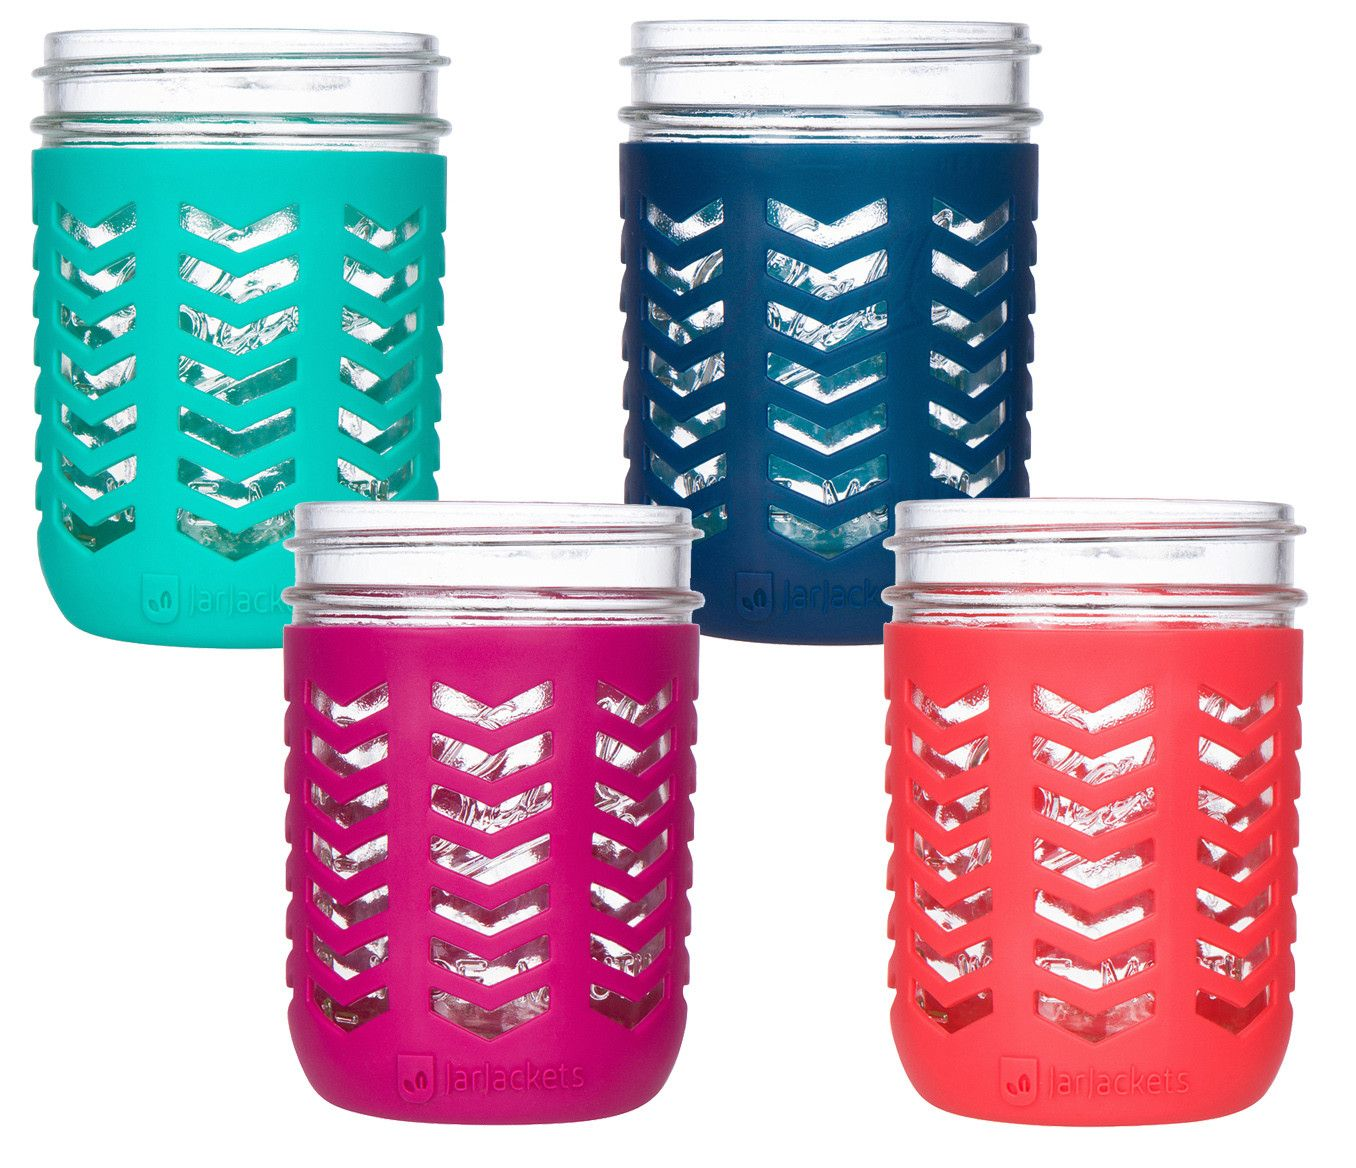 Package Of 4 Silicone Mason Jar Sleeves Fits 16oz 1 Pint